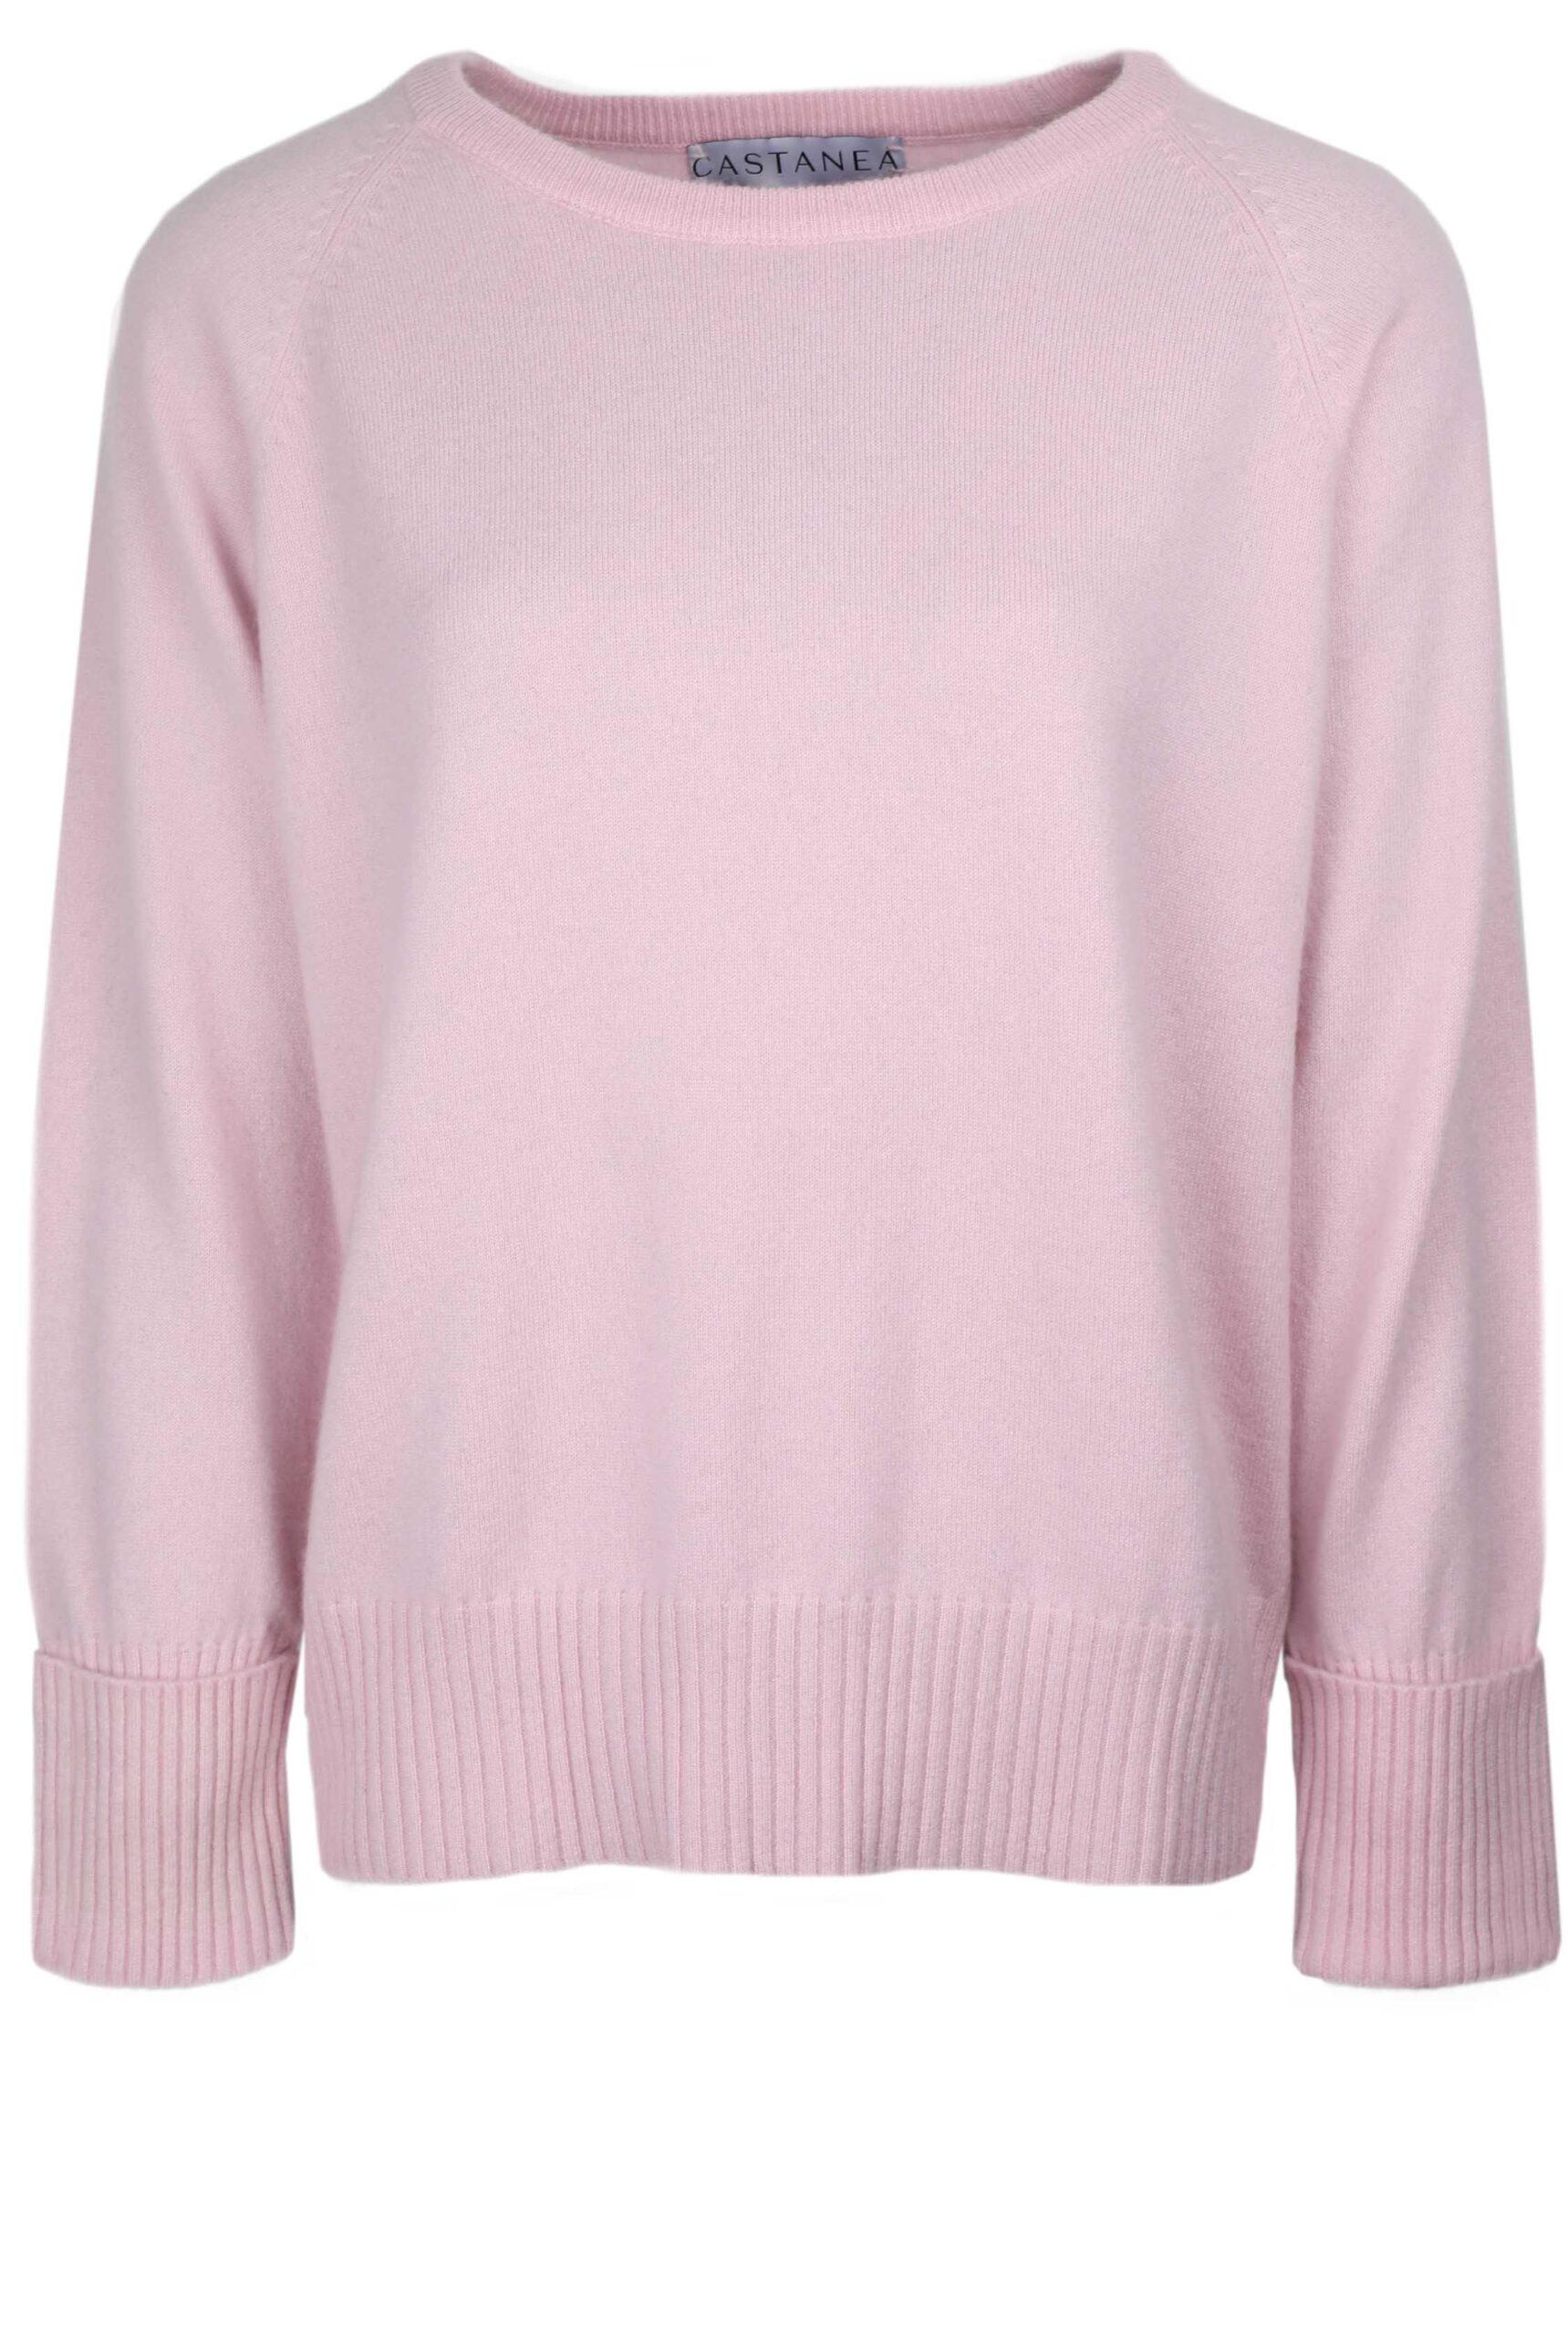 Pale pink relaxed cashmere sweater